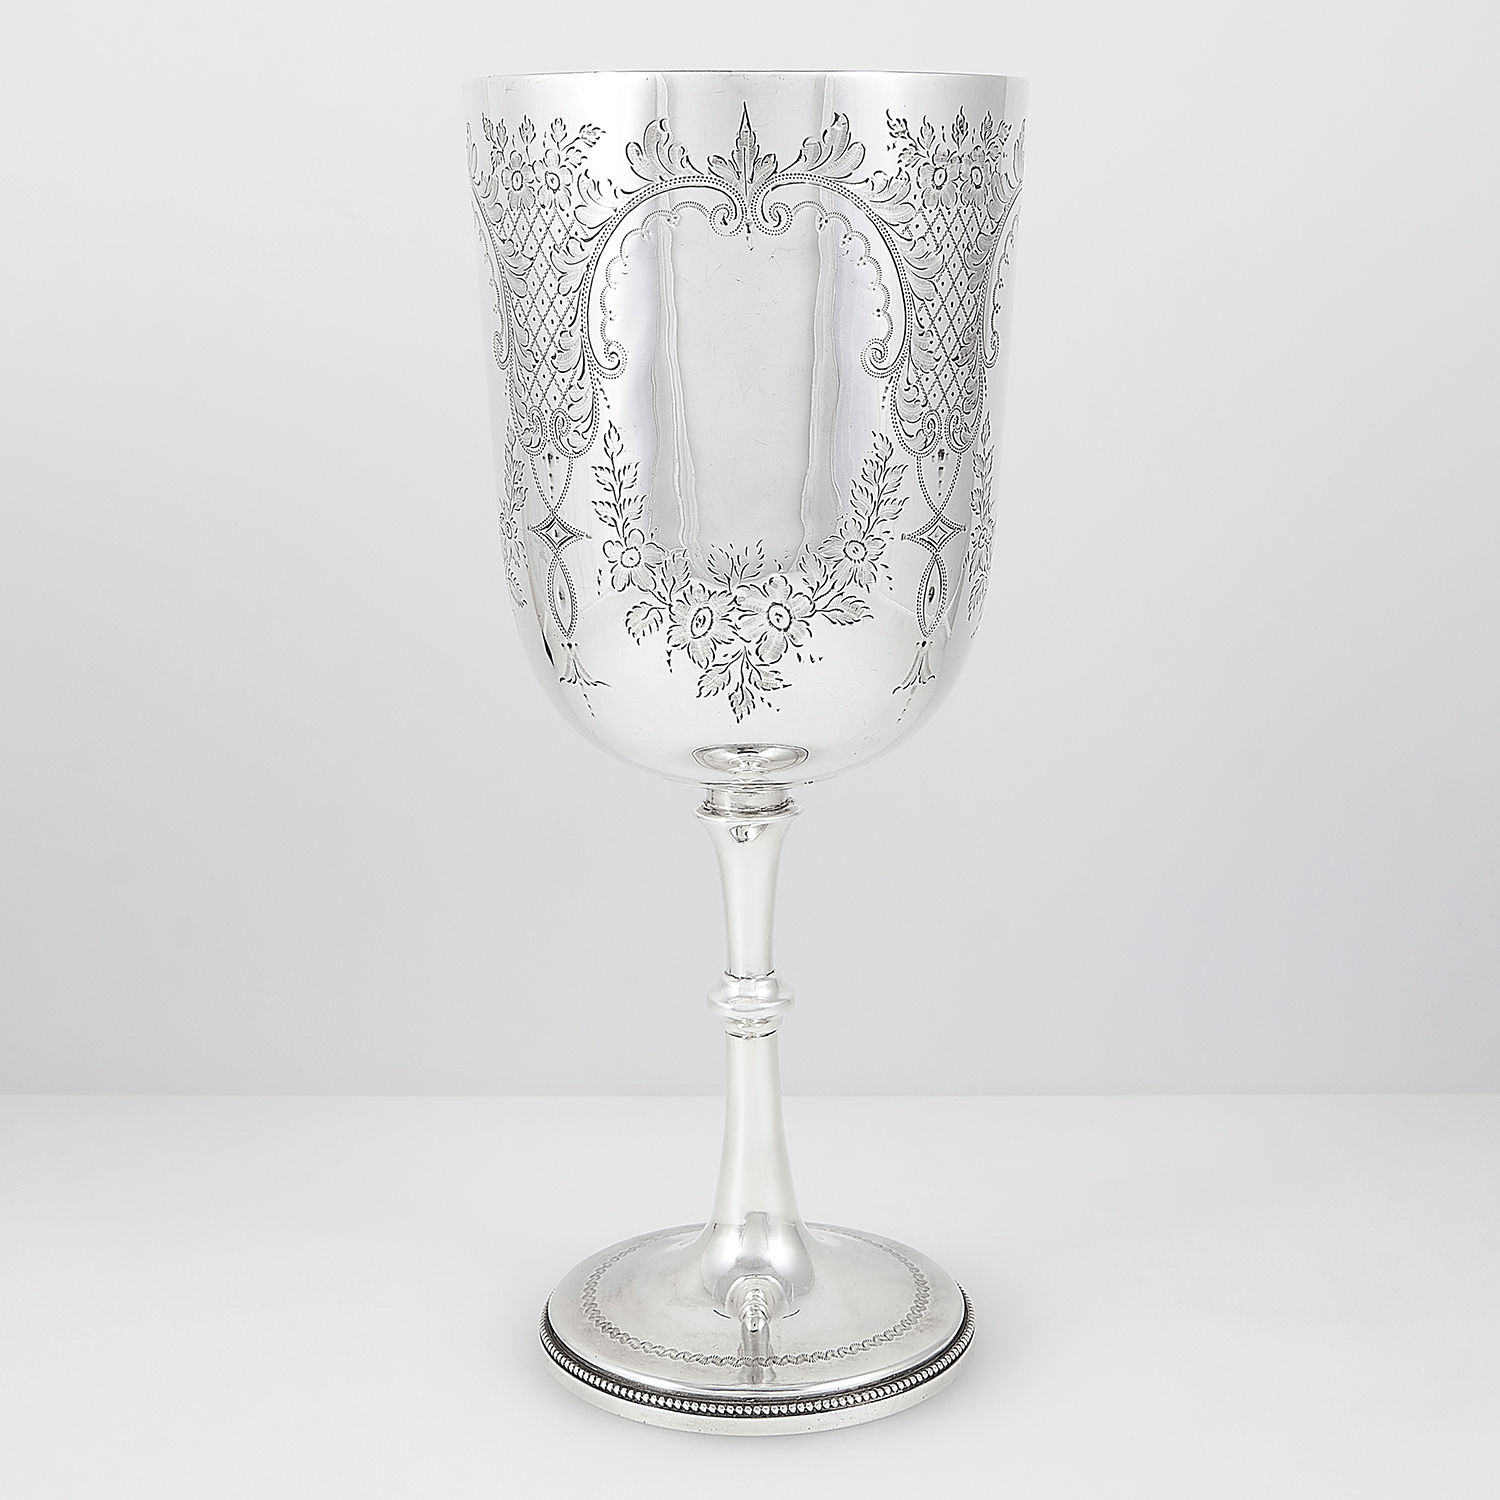 ANTIQUE VICTORIAN STERLING SILVER GOBLET, JACKSON FULLERTON, LONDON 1900 the rounded body with